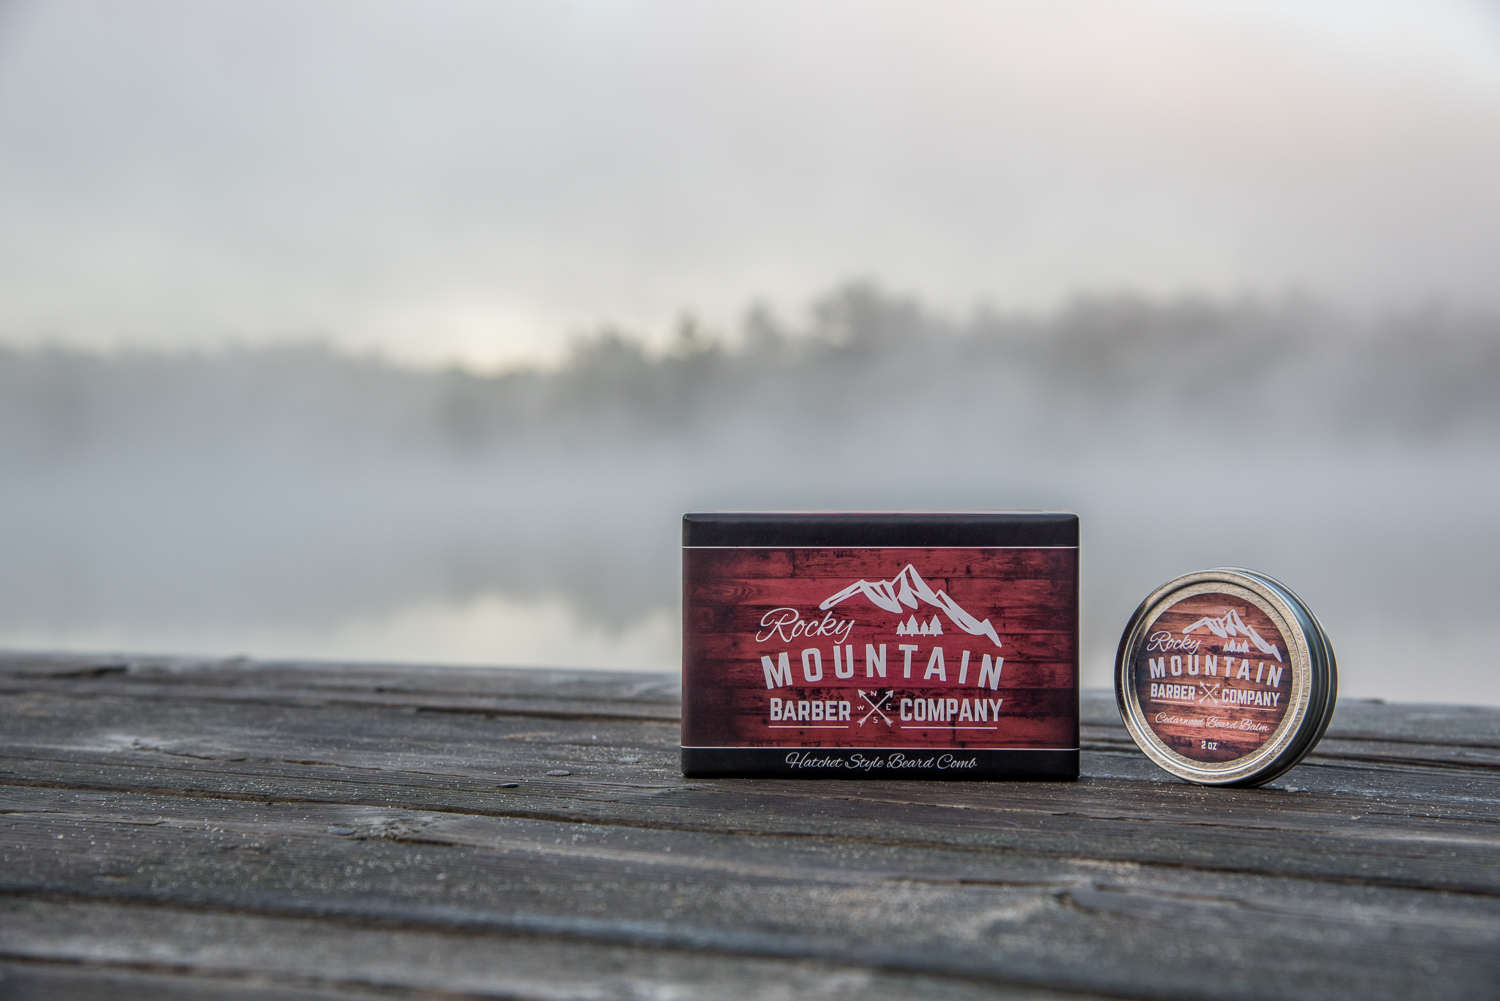 Hamilton Commercial Photographer - Lifestyle product photography - Rocky Mountain Barber Company01.jpg